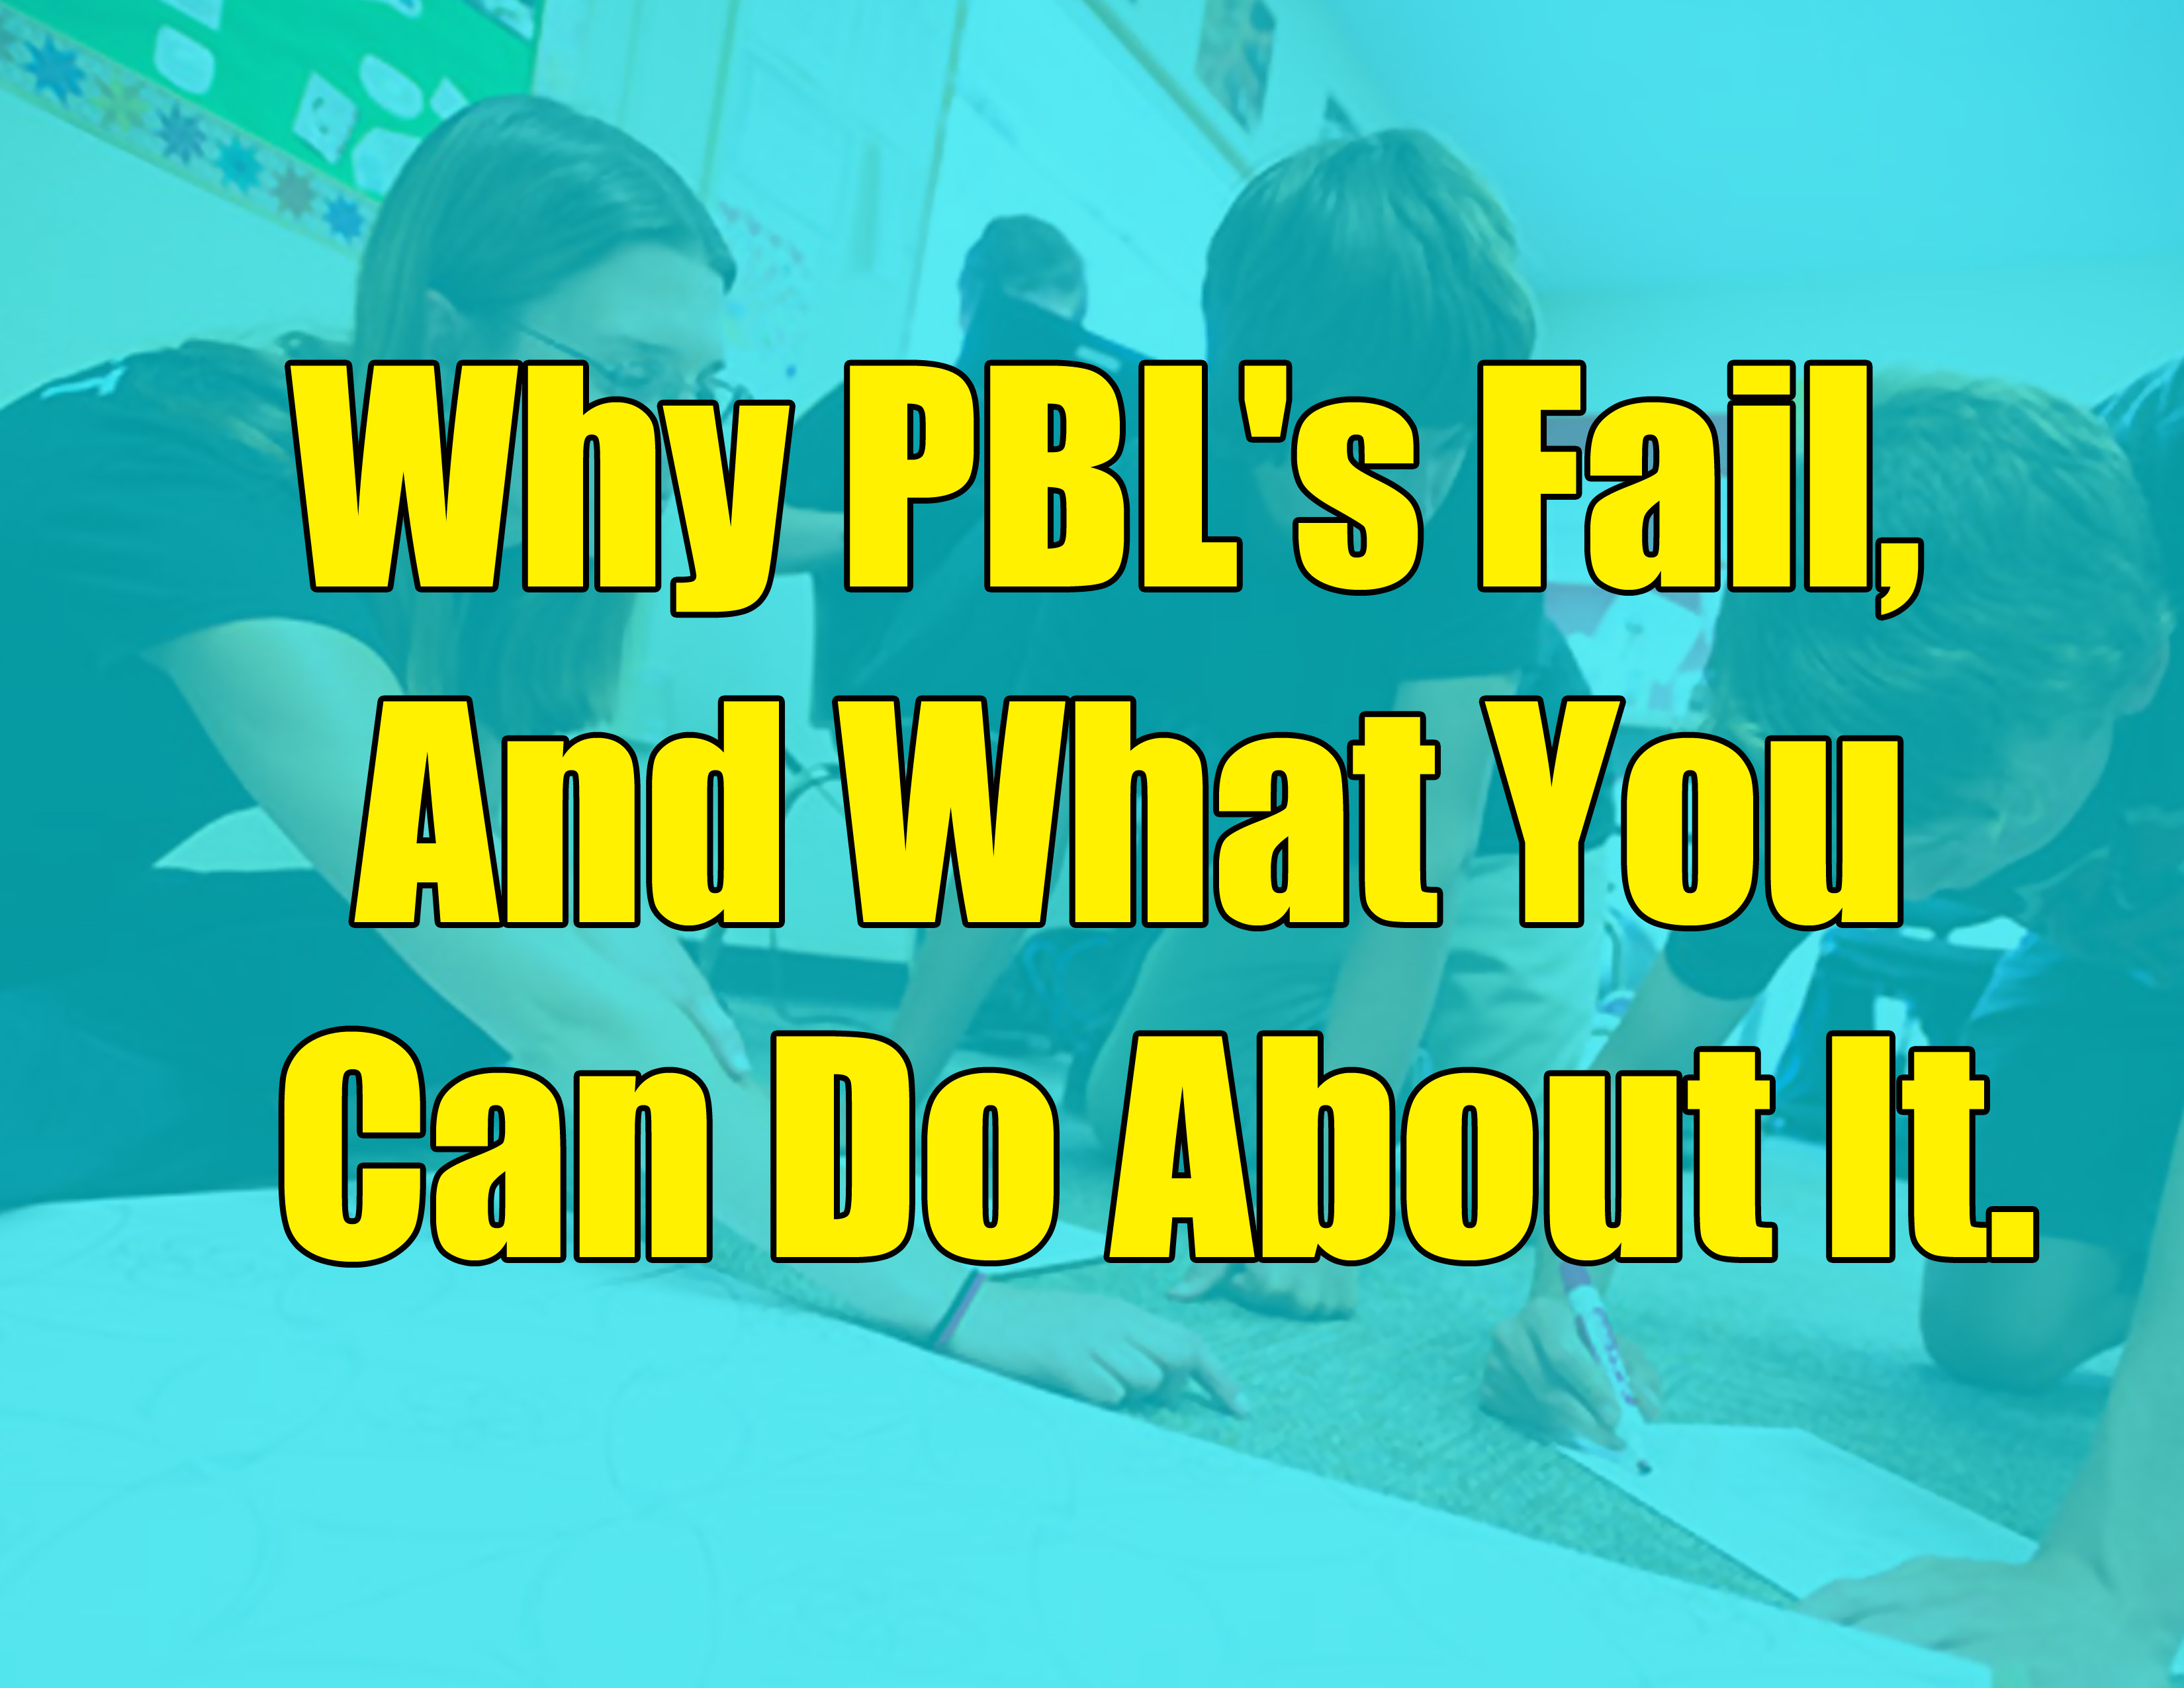 Why problem based learning fails - and what you can do about it